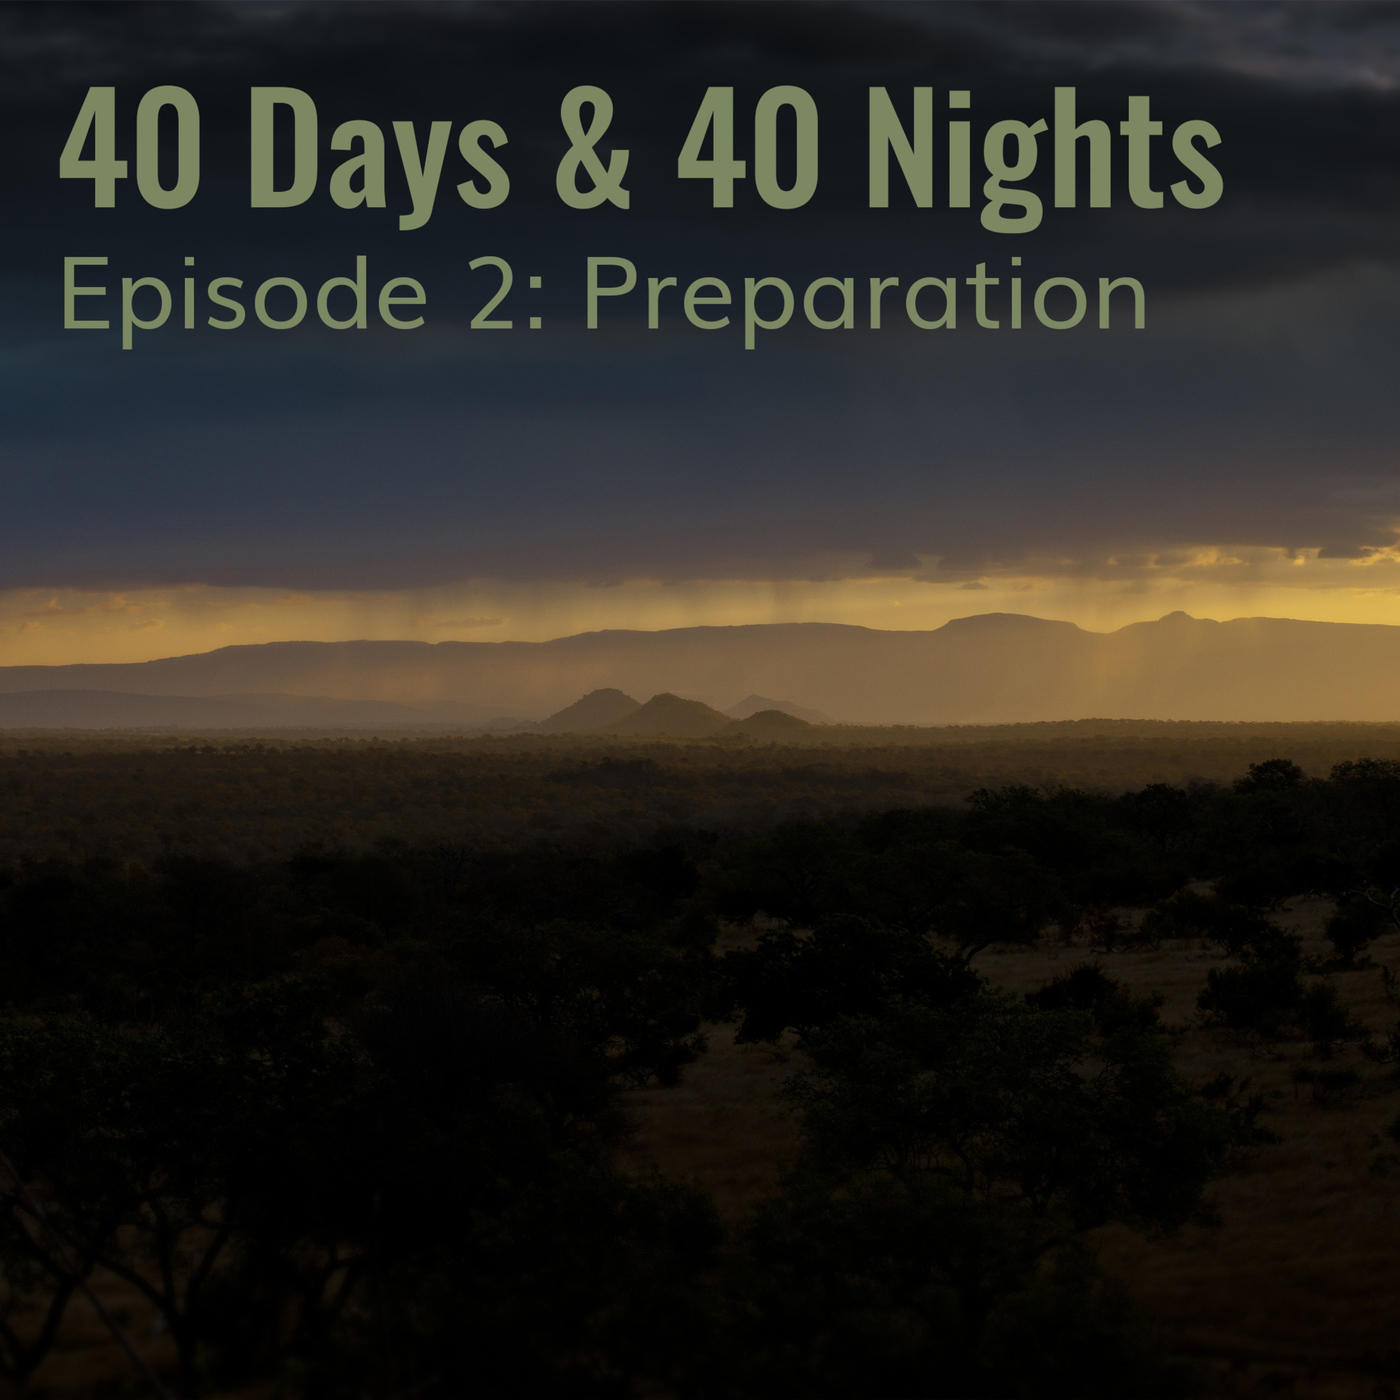 Track Your Life with Boyd Varty 2-preparation: 40 Days & 40 Nights Preparation